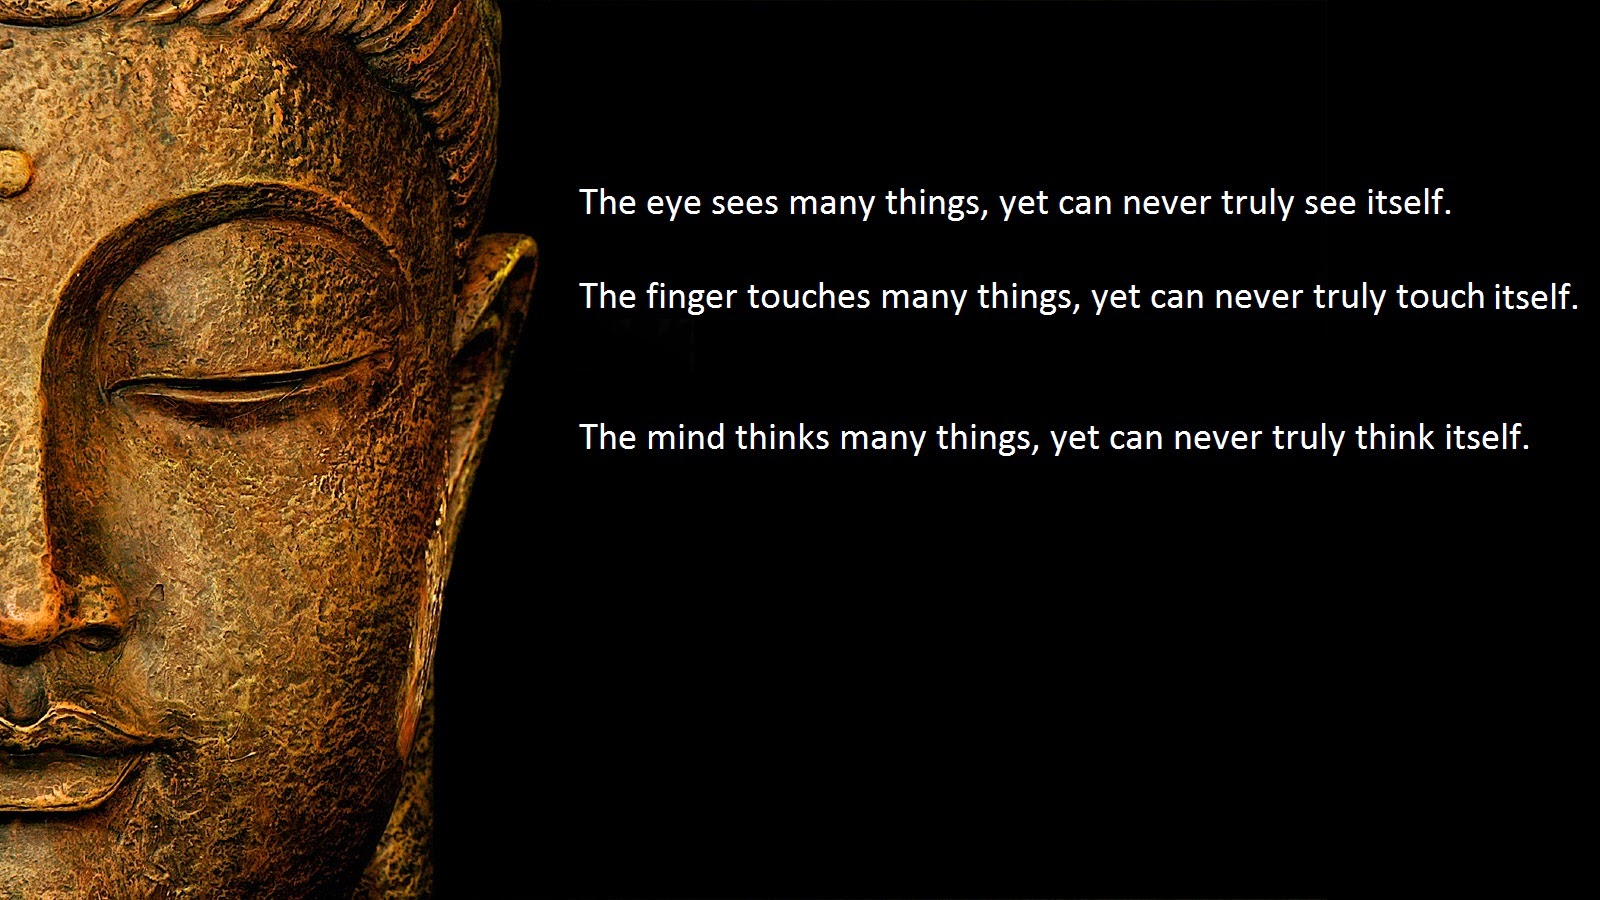 HD-buddha-quotes-wallpapers-for-facebook-cover.jpg